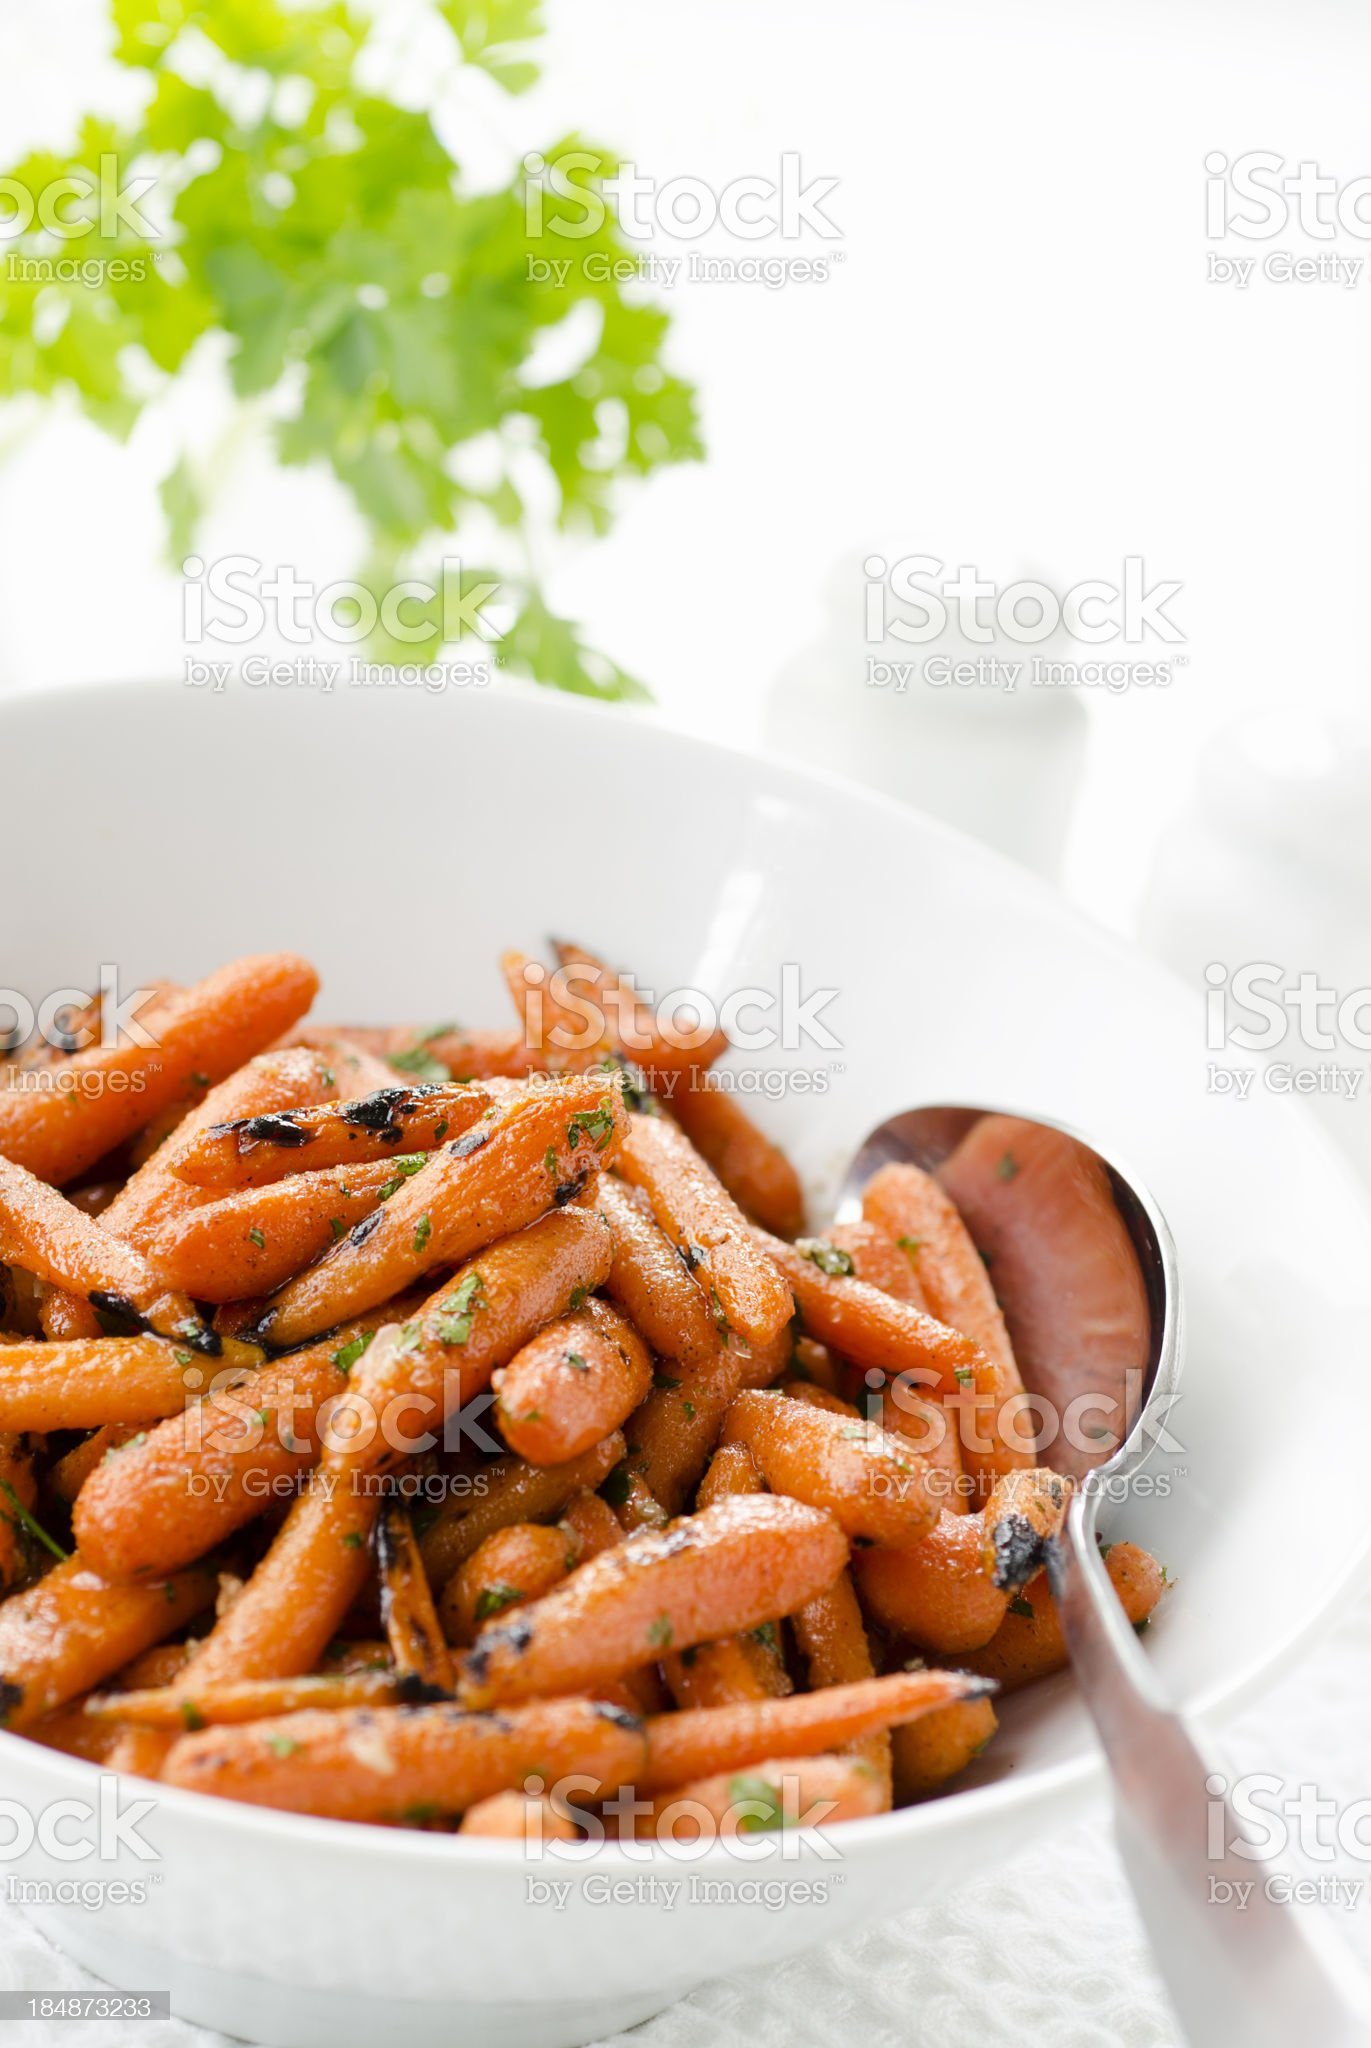 Grilled Honey Glazed Baby Carrots with Copy Space royalty-free stock photo